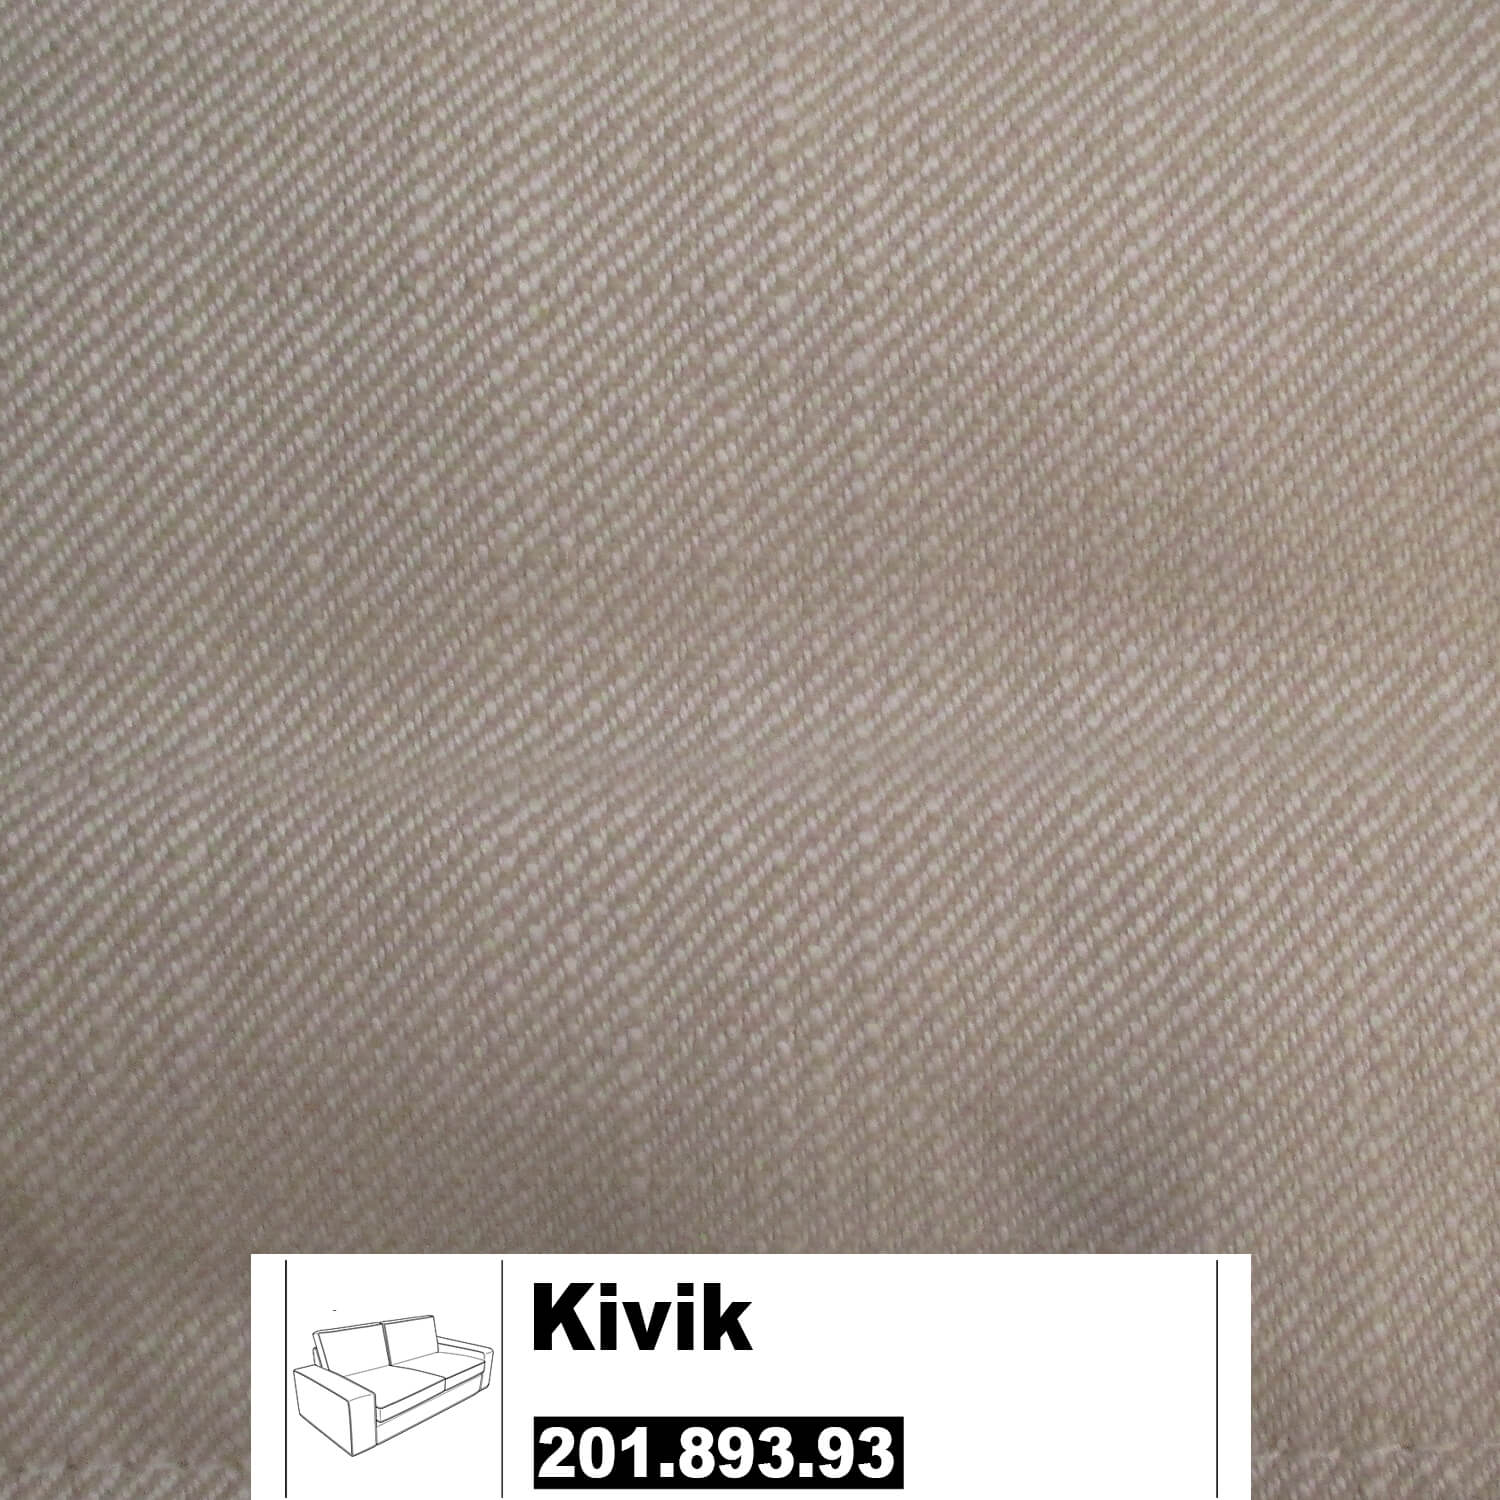 ikea kivik bezug f r 2er sofa in svanby beige. Black Bedroom Furniture Sets. Home Design Ideas